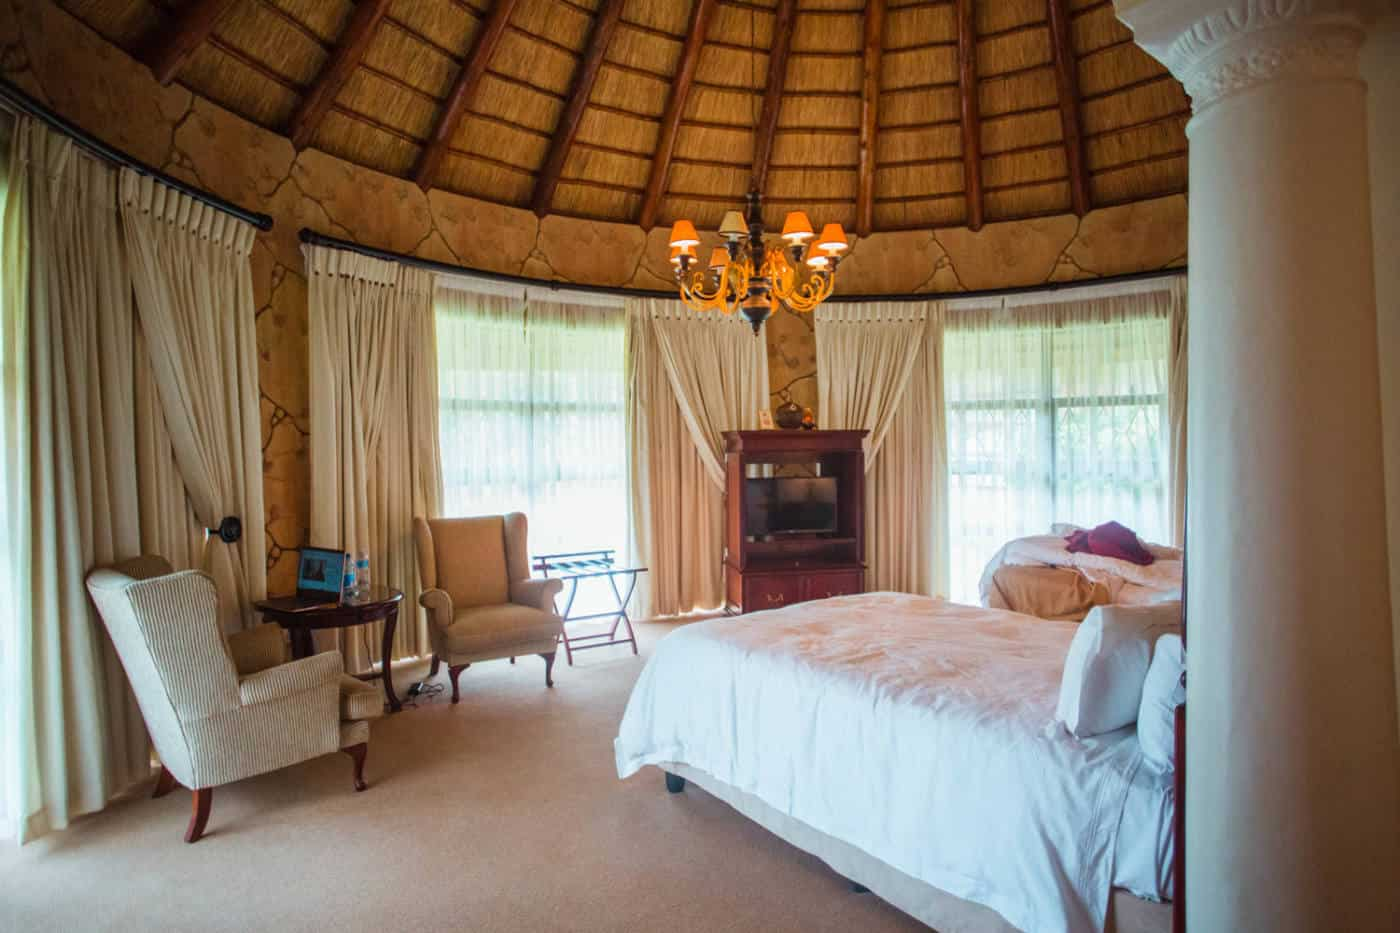 Summerfield botanical gardens swaziland bedroom